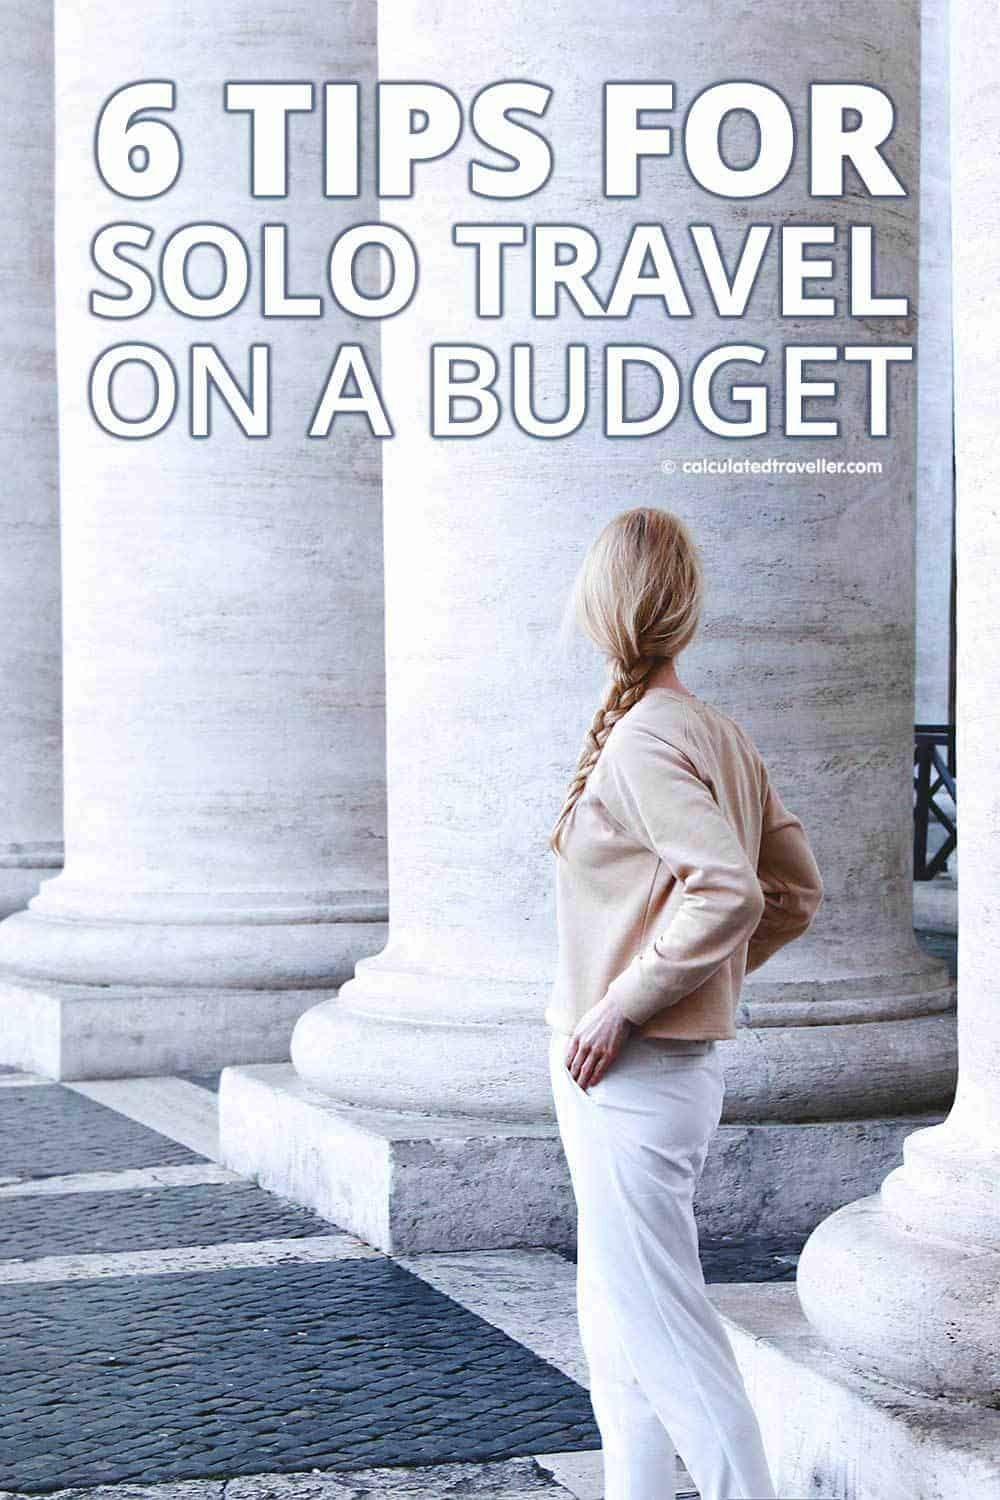 6 Tips for Solo Travel on a Budget | #travel #solo #budget #planning #vacation #holiday #advice #tip